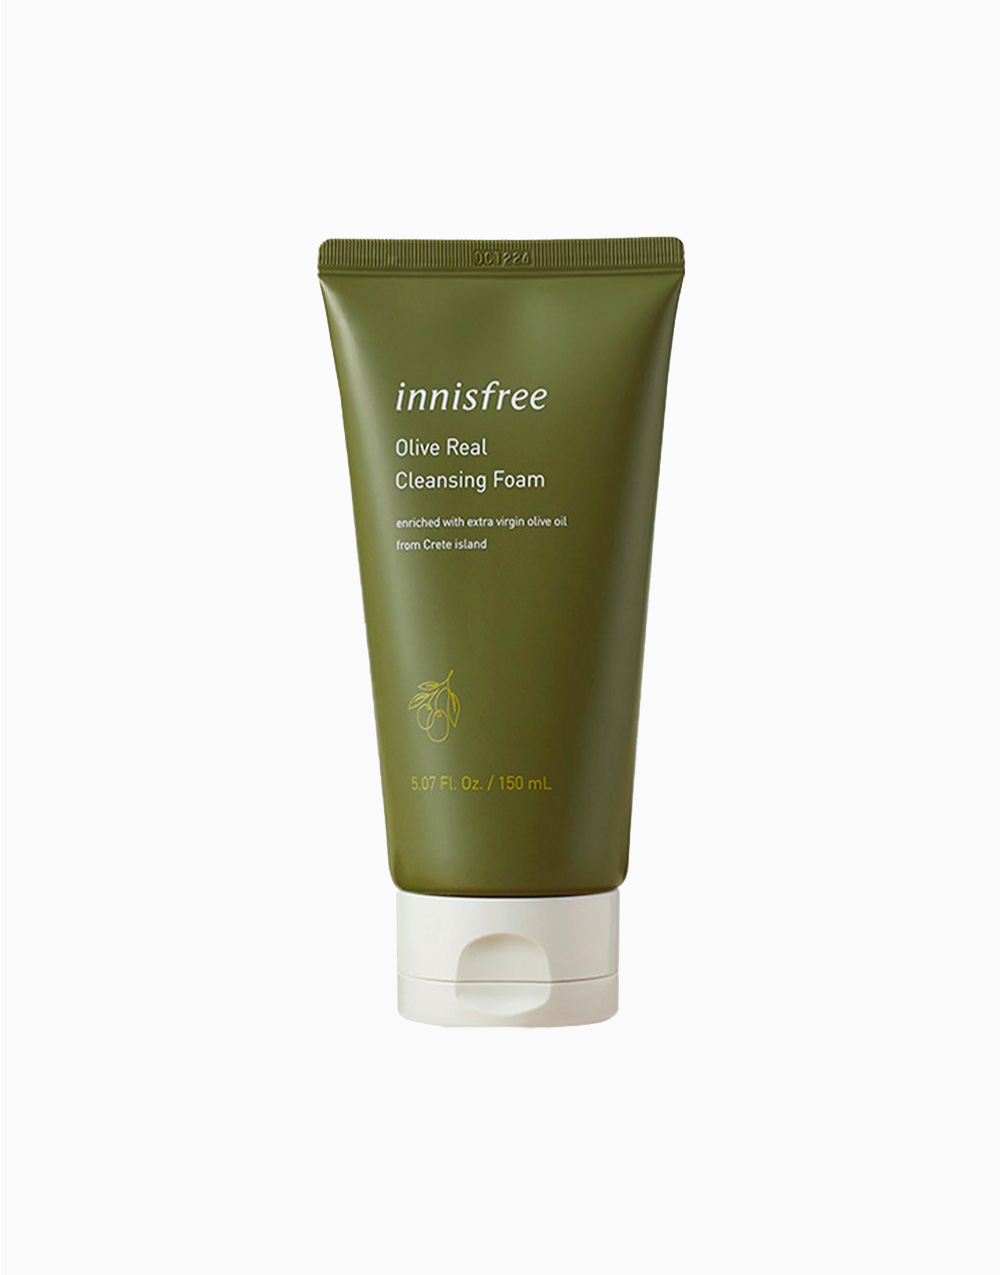 Olive Real Cleansing Foam by Innisfree